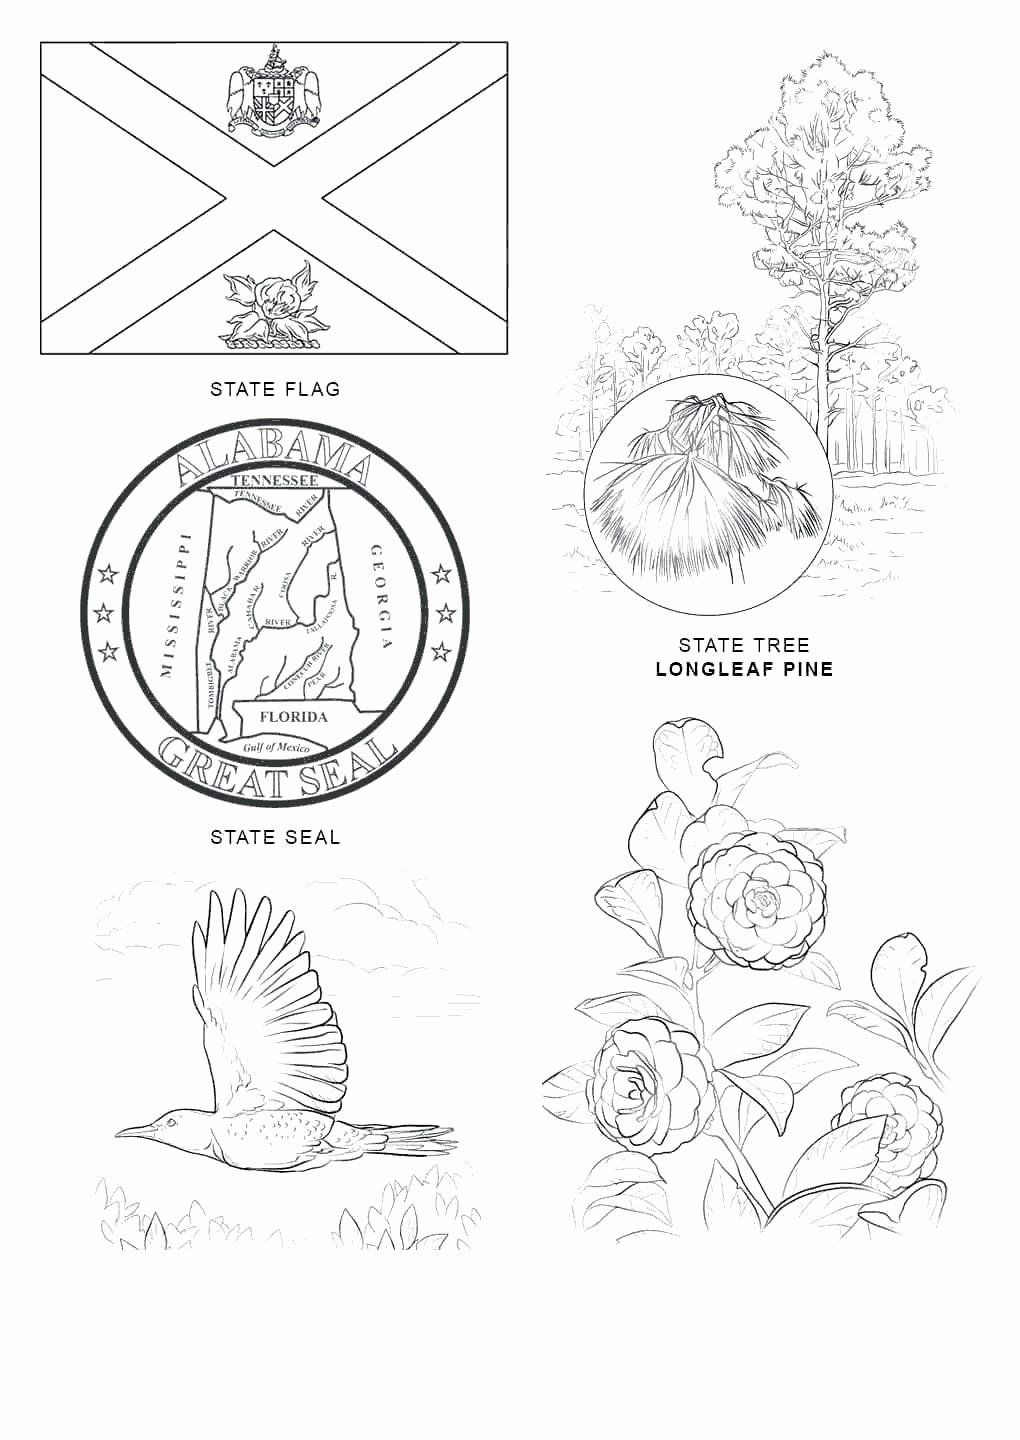 Michigan State Flag Coloring Page Elegant Tennessee Flag Coloring